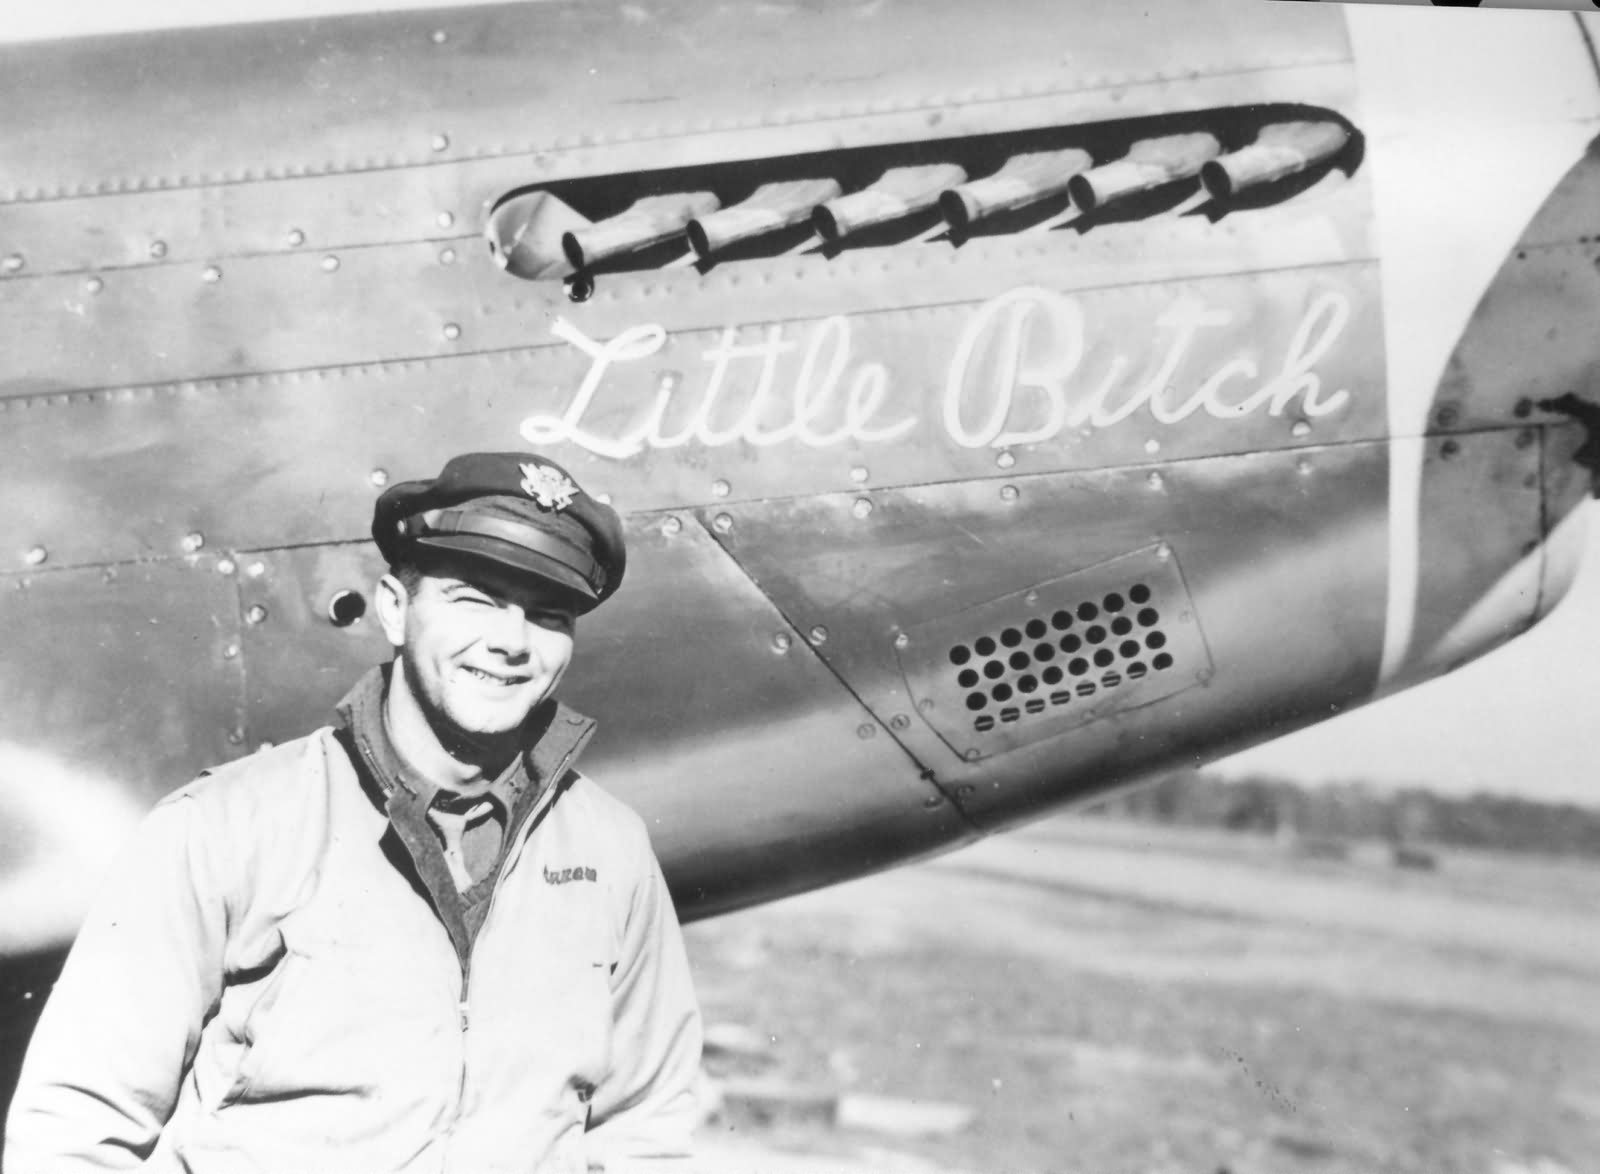 Capt dave peron 357th fighter group by p 51b mustang for Captain dave s fishing